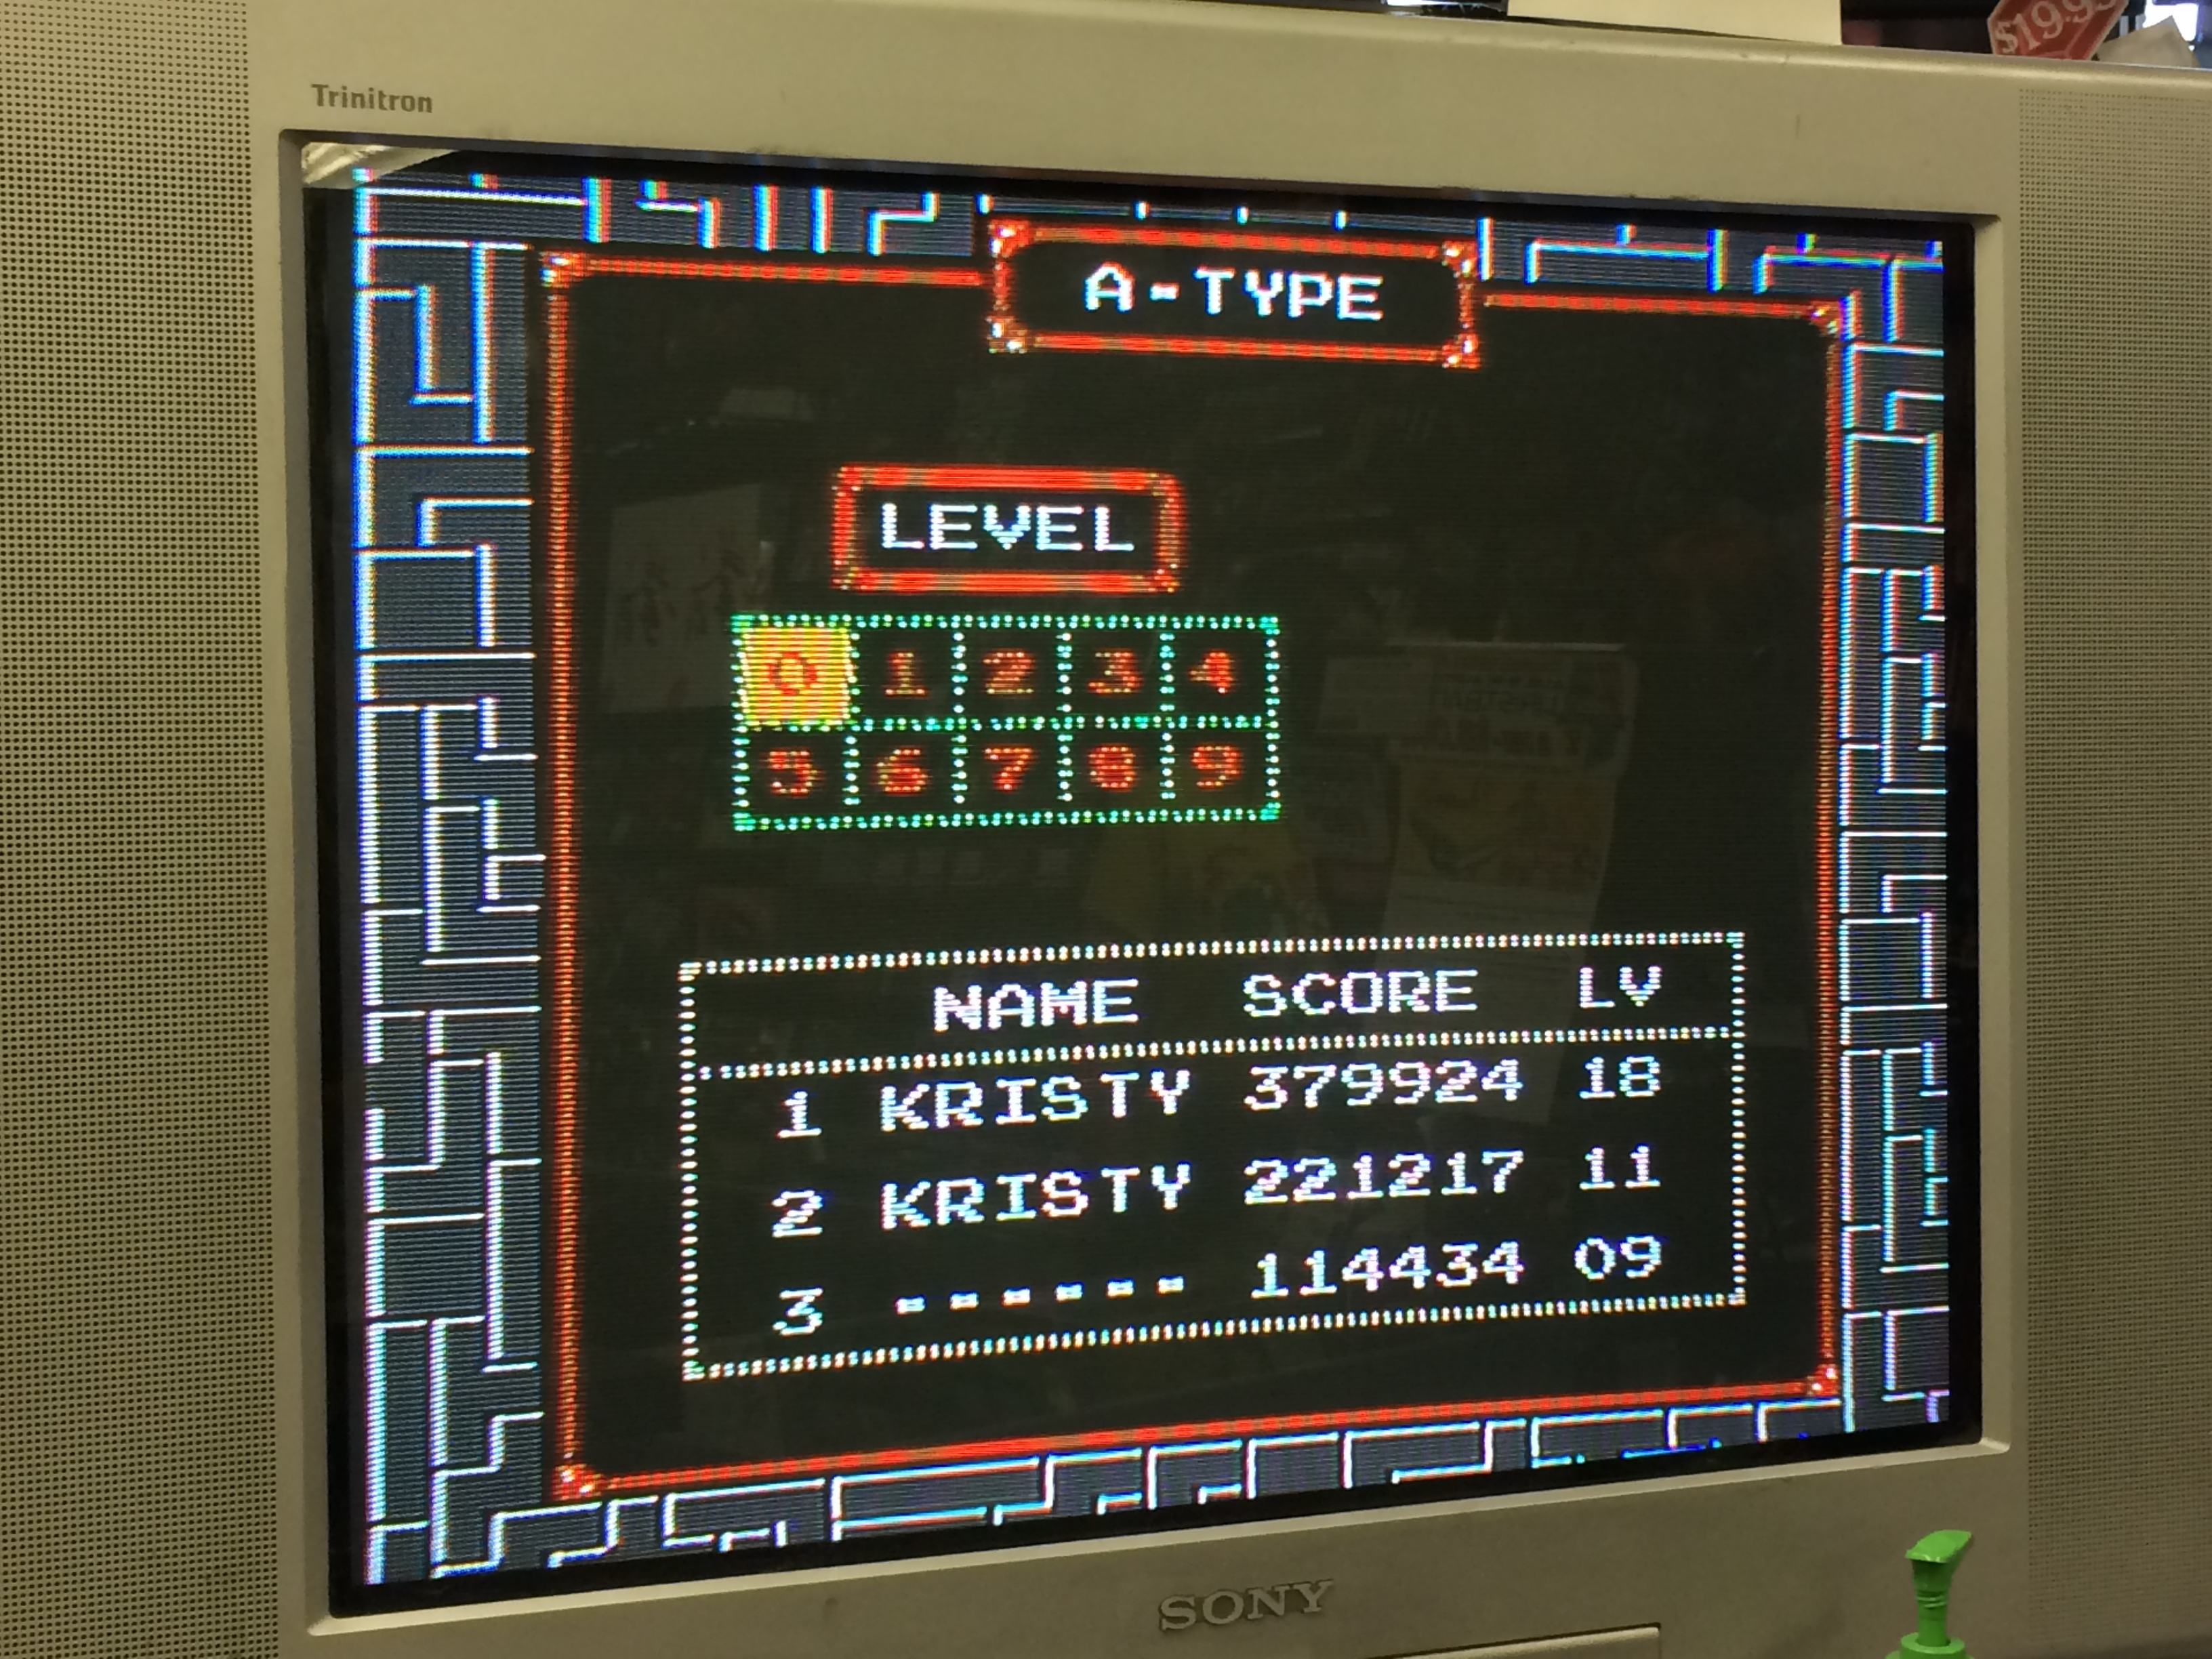 Tetris 379,924 points